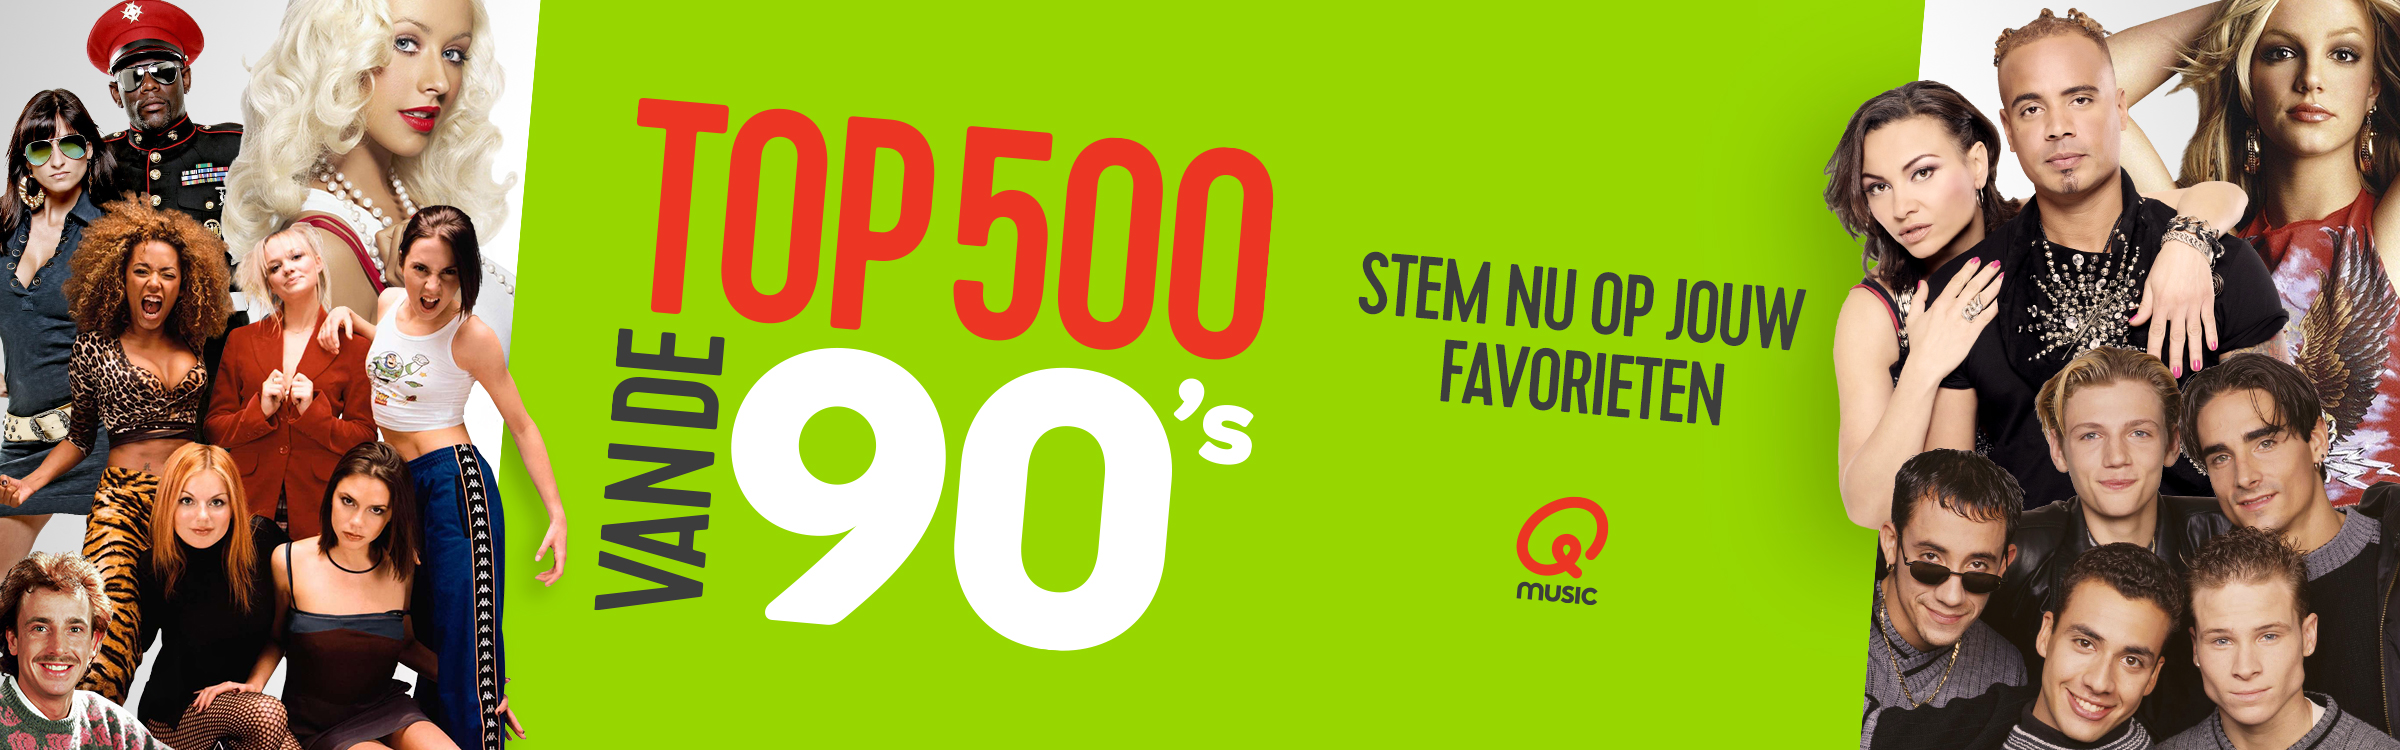 Qmusic actionheader top500 90s